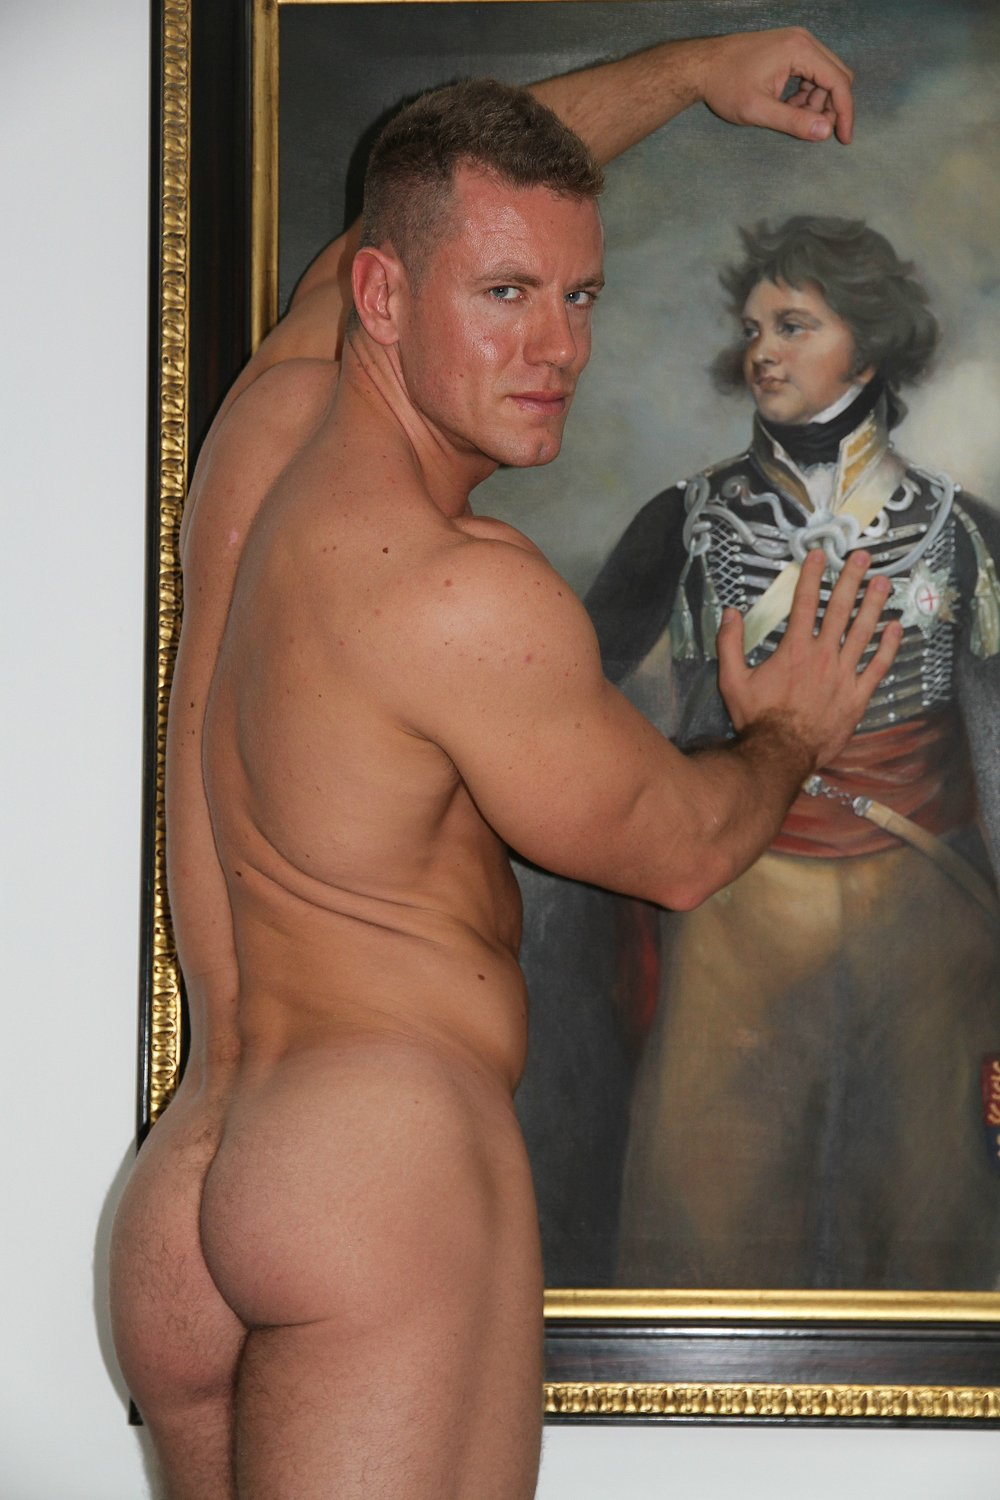 Stefano Foster , in the Regency Room, Palace Hotel (not recommended by the photographer), London, bonding with some Royal.